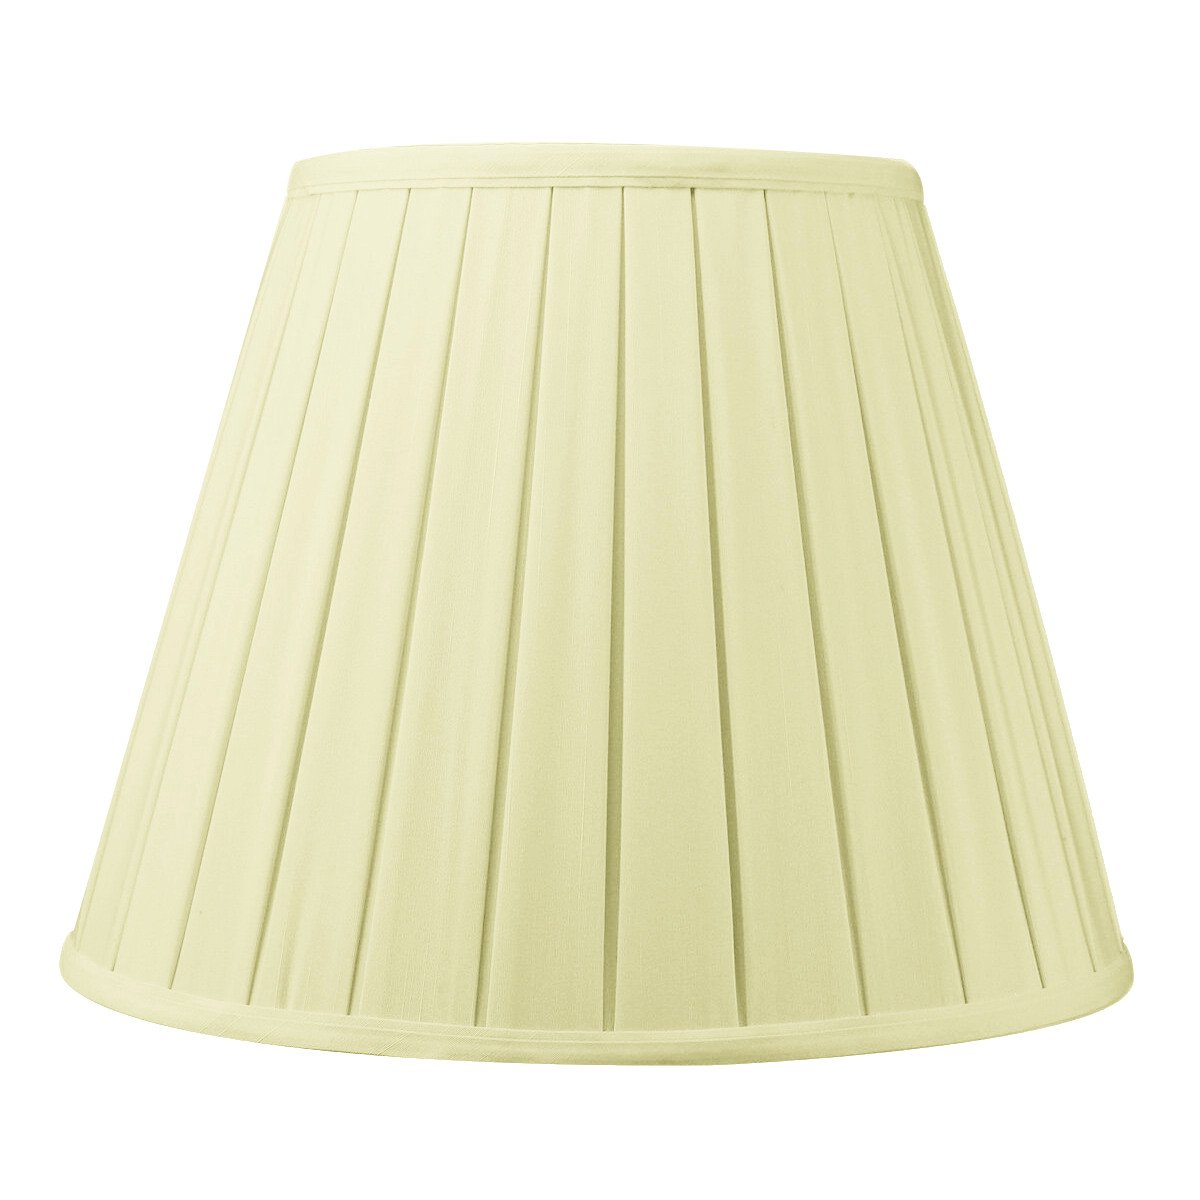 8x14x11 Eggshell Empire Box Pleat Lampshade with Brass Spider fitter By Home Concept - Perfect for table lamps and some desk lamps -Medium, Egg Shell